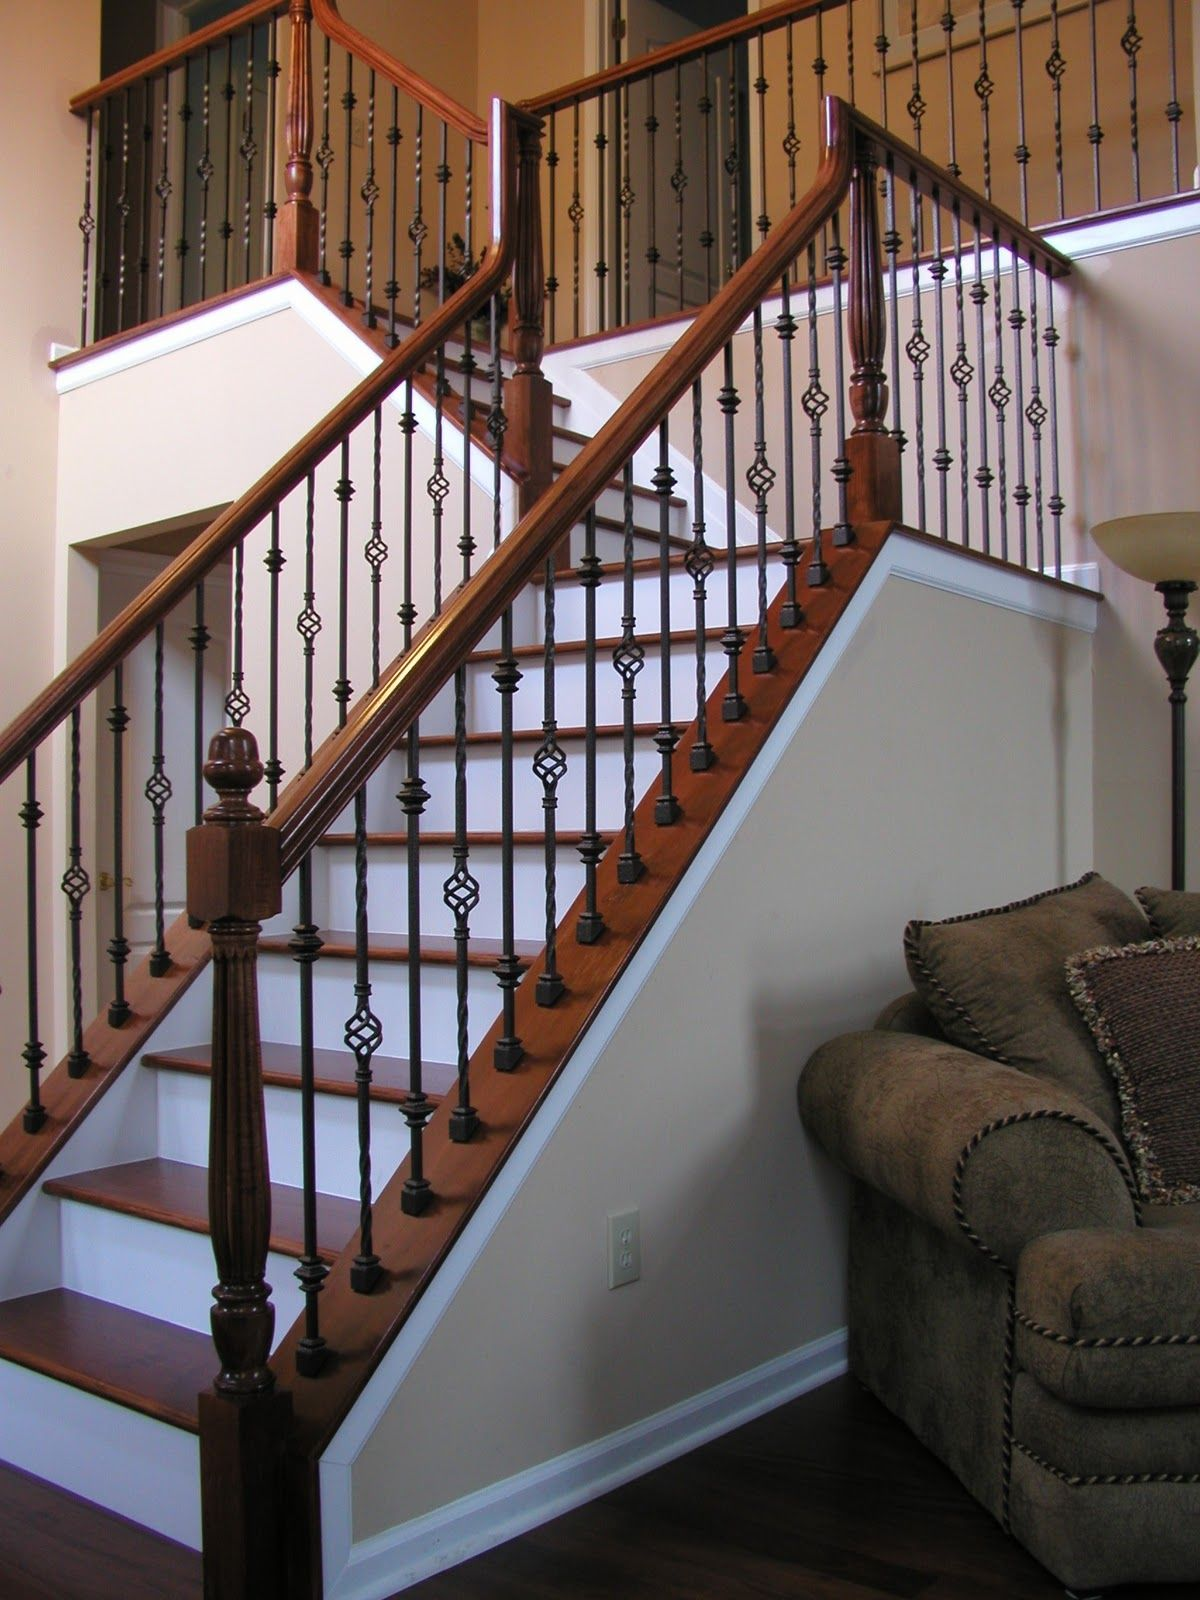 Pin By Beth Gould On Home Sweet Home On Hyde Street Wrought Iron | Iron Stairs Design Indoor | Stainless Steel | Stair Treads | Stair Railings | Spiral Stairs | Steel